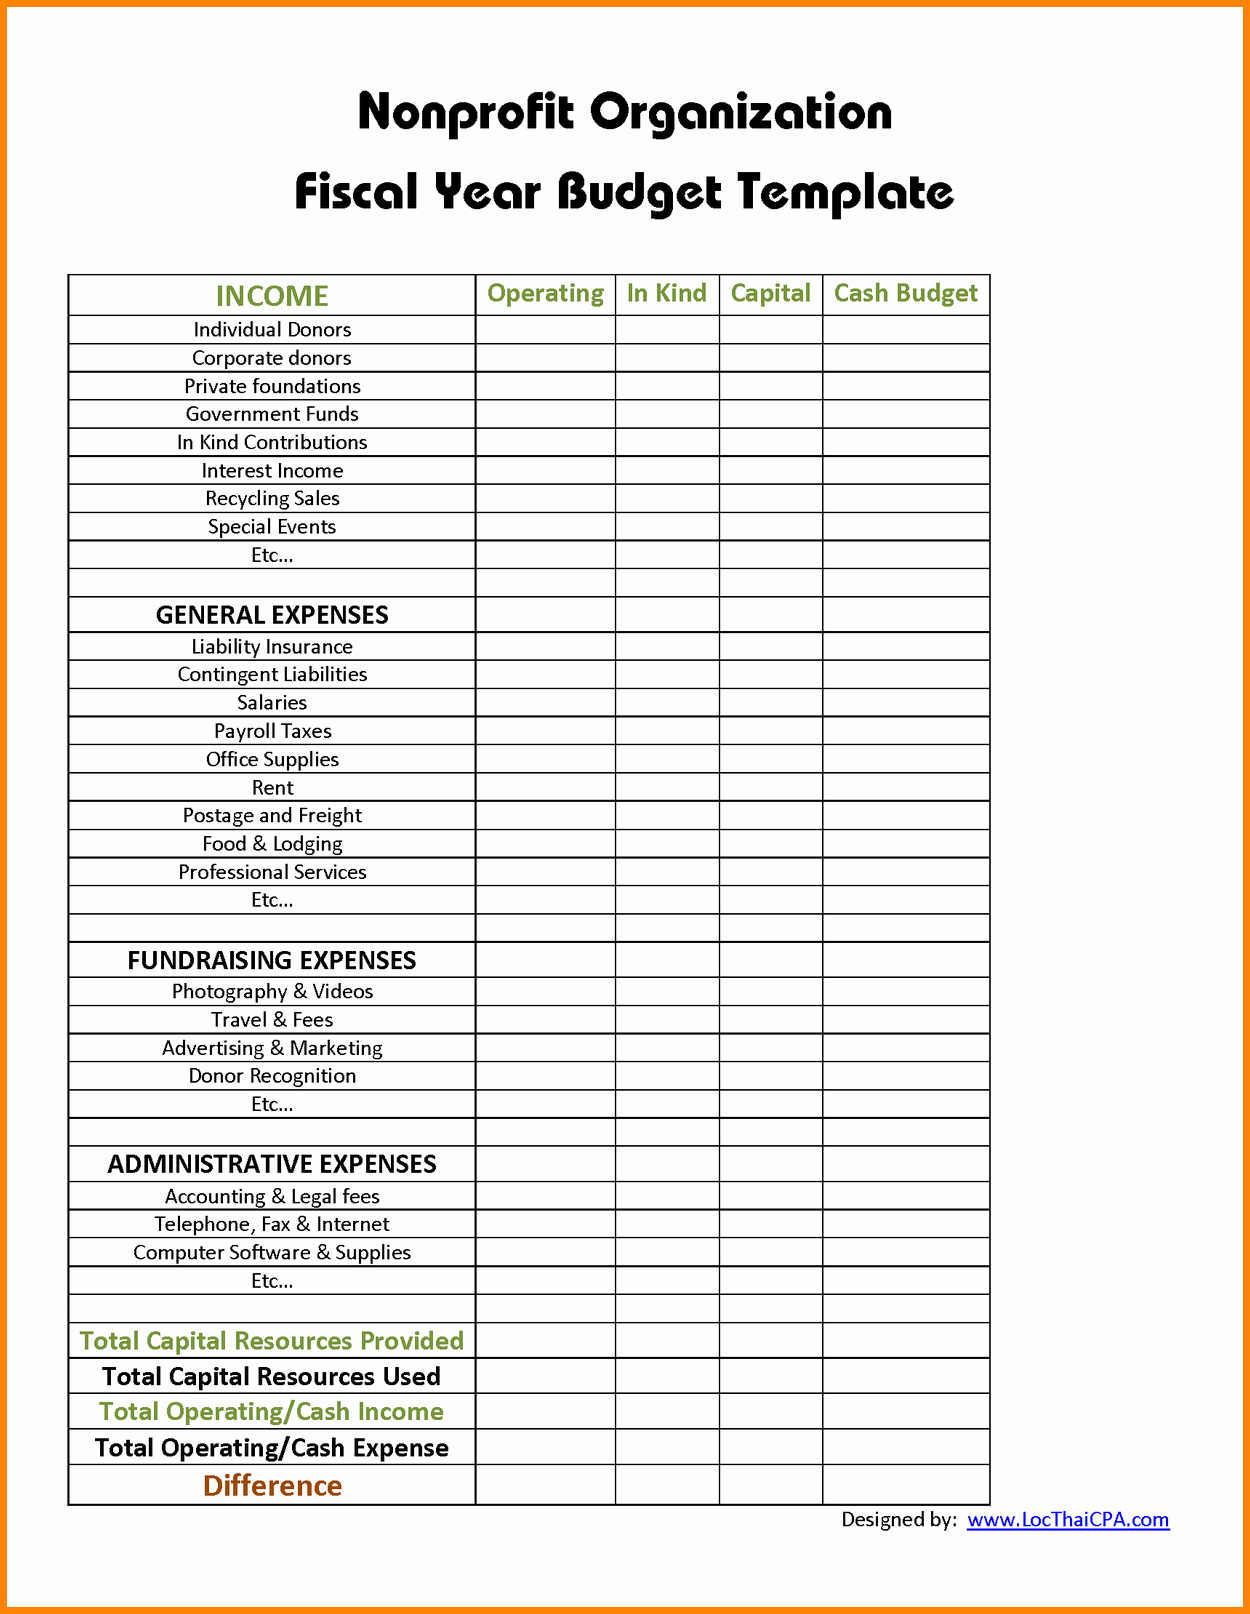 Non Profit Budget Template Inspirational Operating Bud Template Non Profit